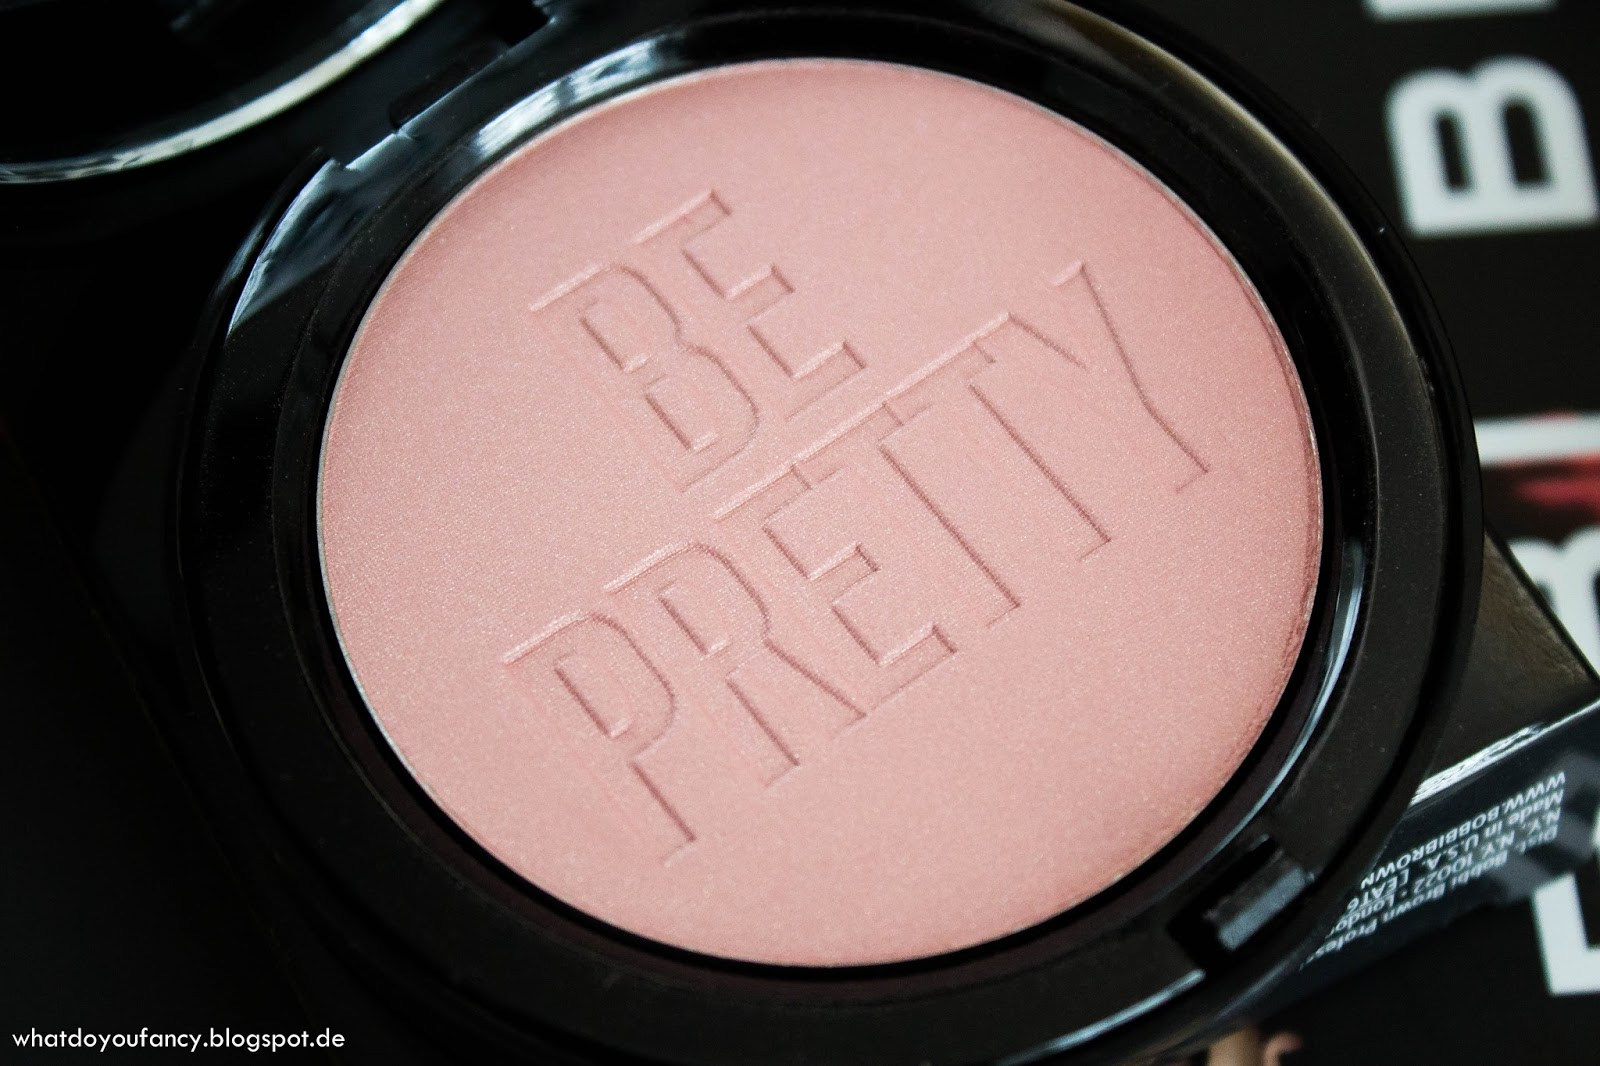 Bobbi Brown Uber Pink Collection - It's pink, it's pretty